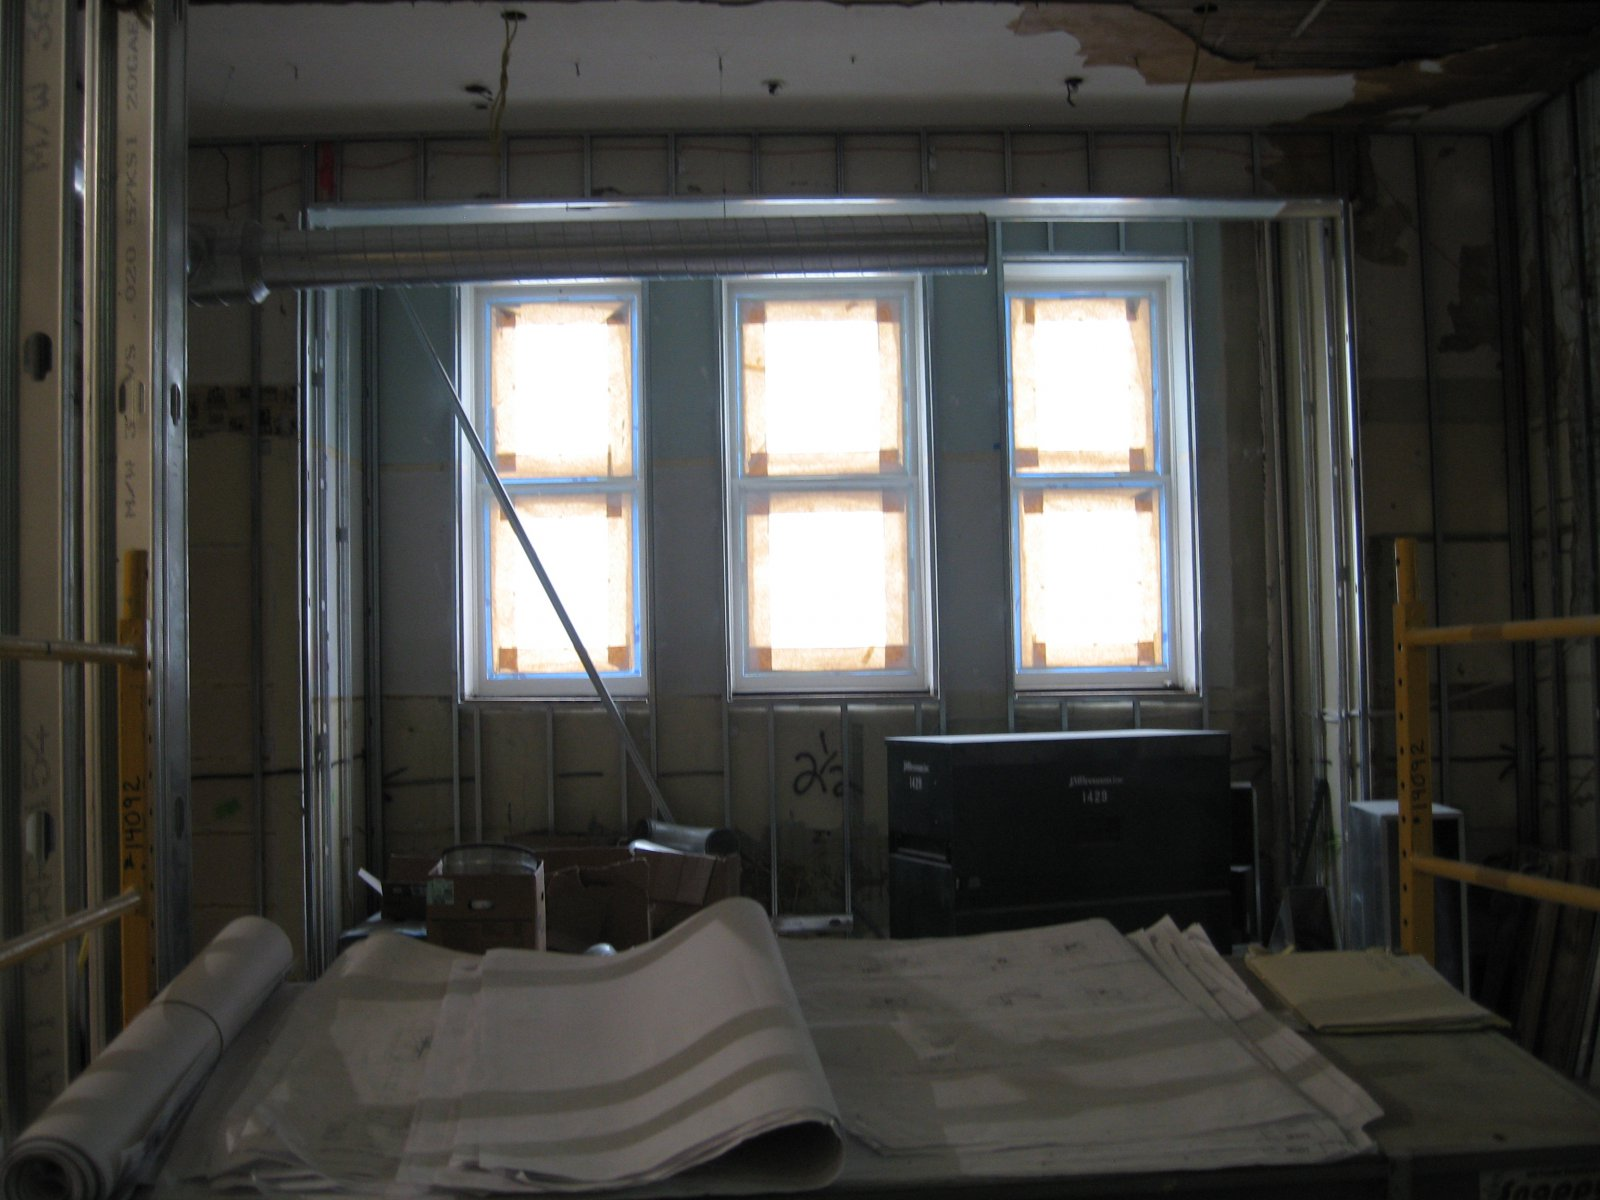 Inside the Mackie Building renovation